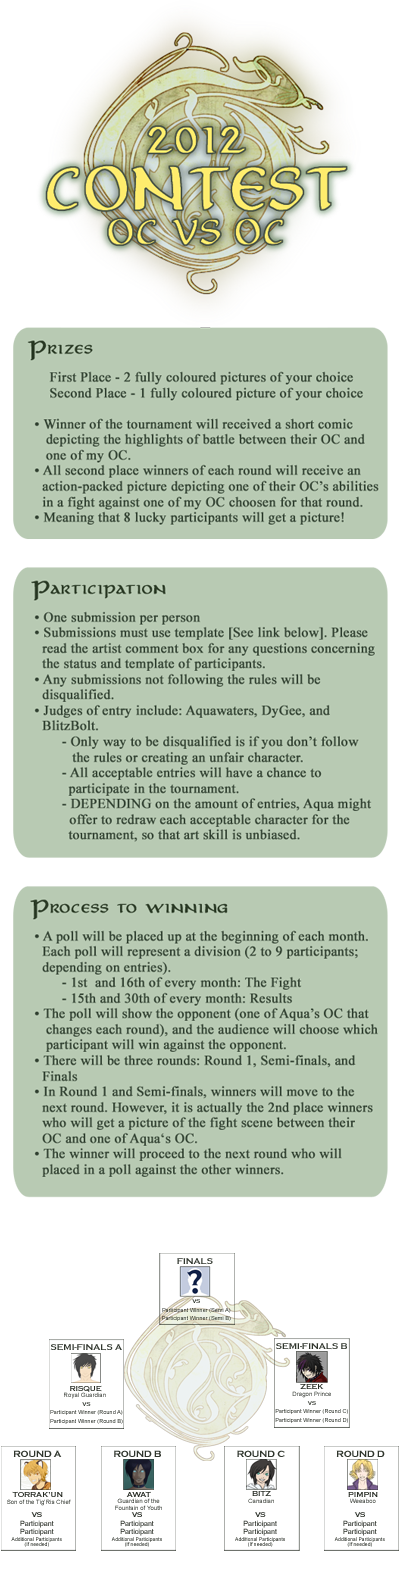 CONTEST 2012 - OC Versus OC - Clarifications by AquaWaters